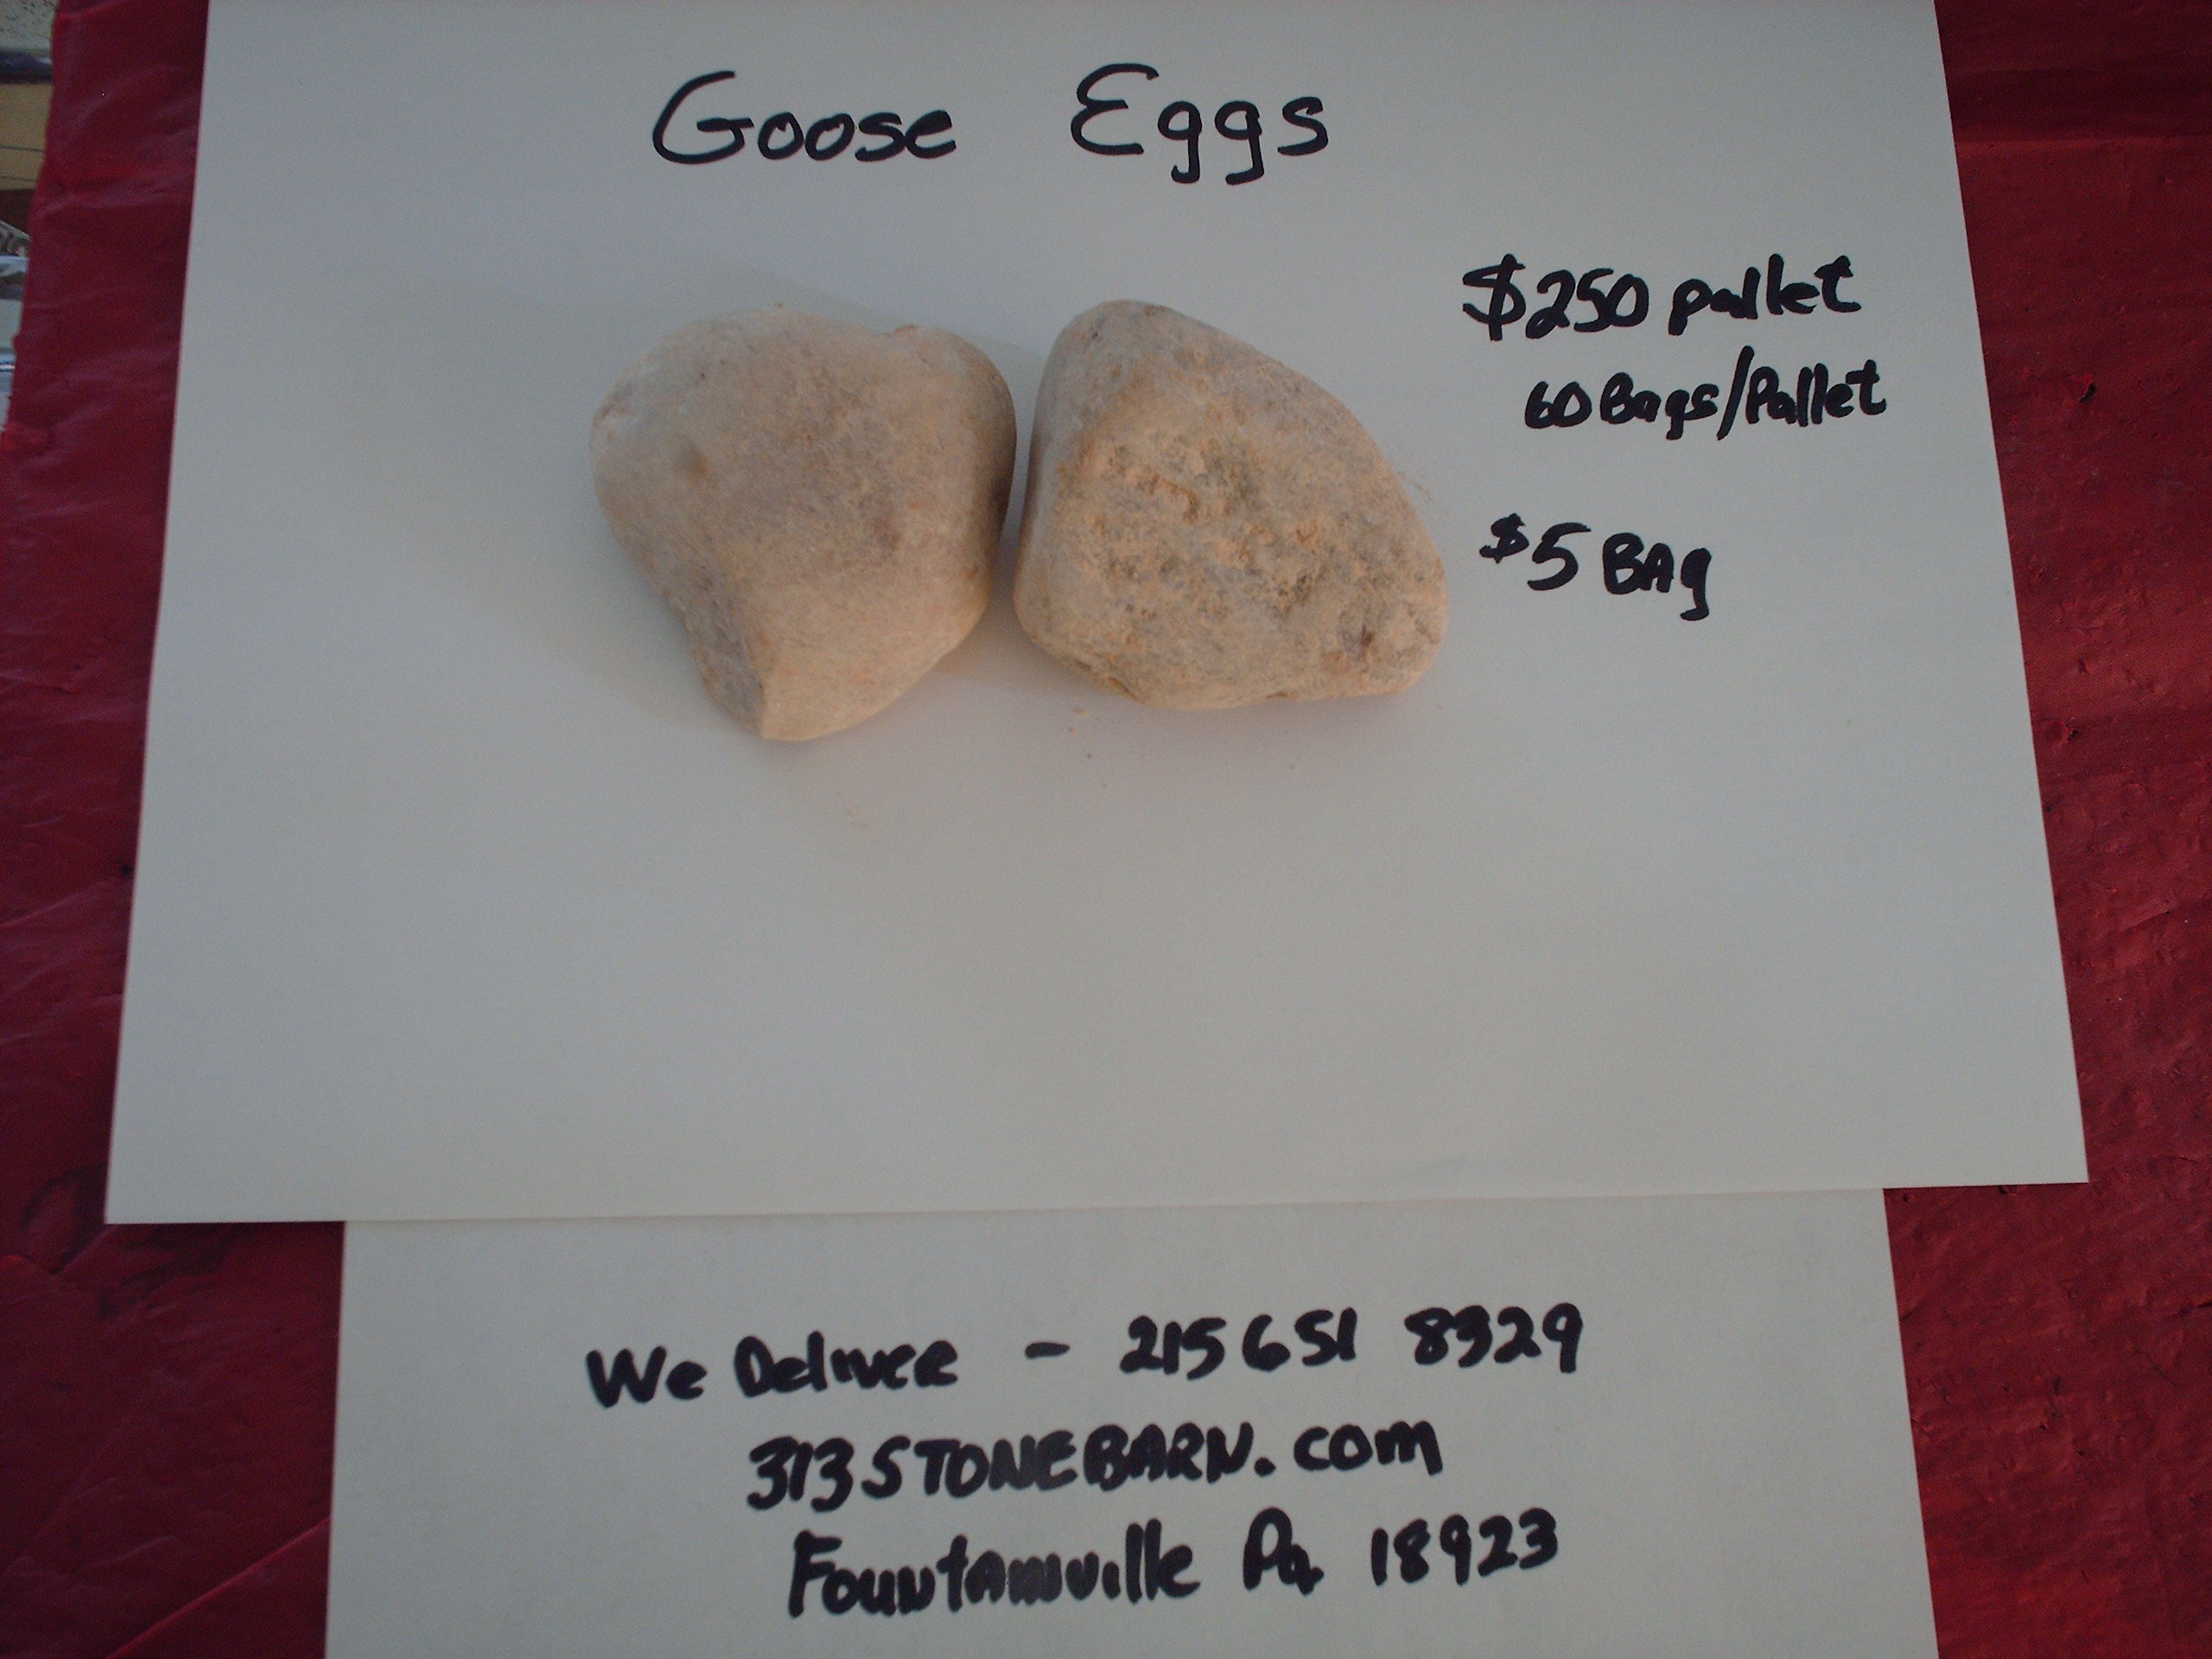 We deliver pallets of these Goose Egg Stones.